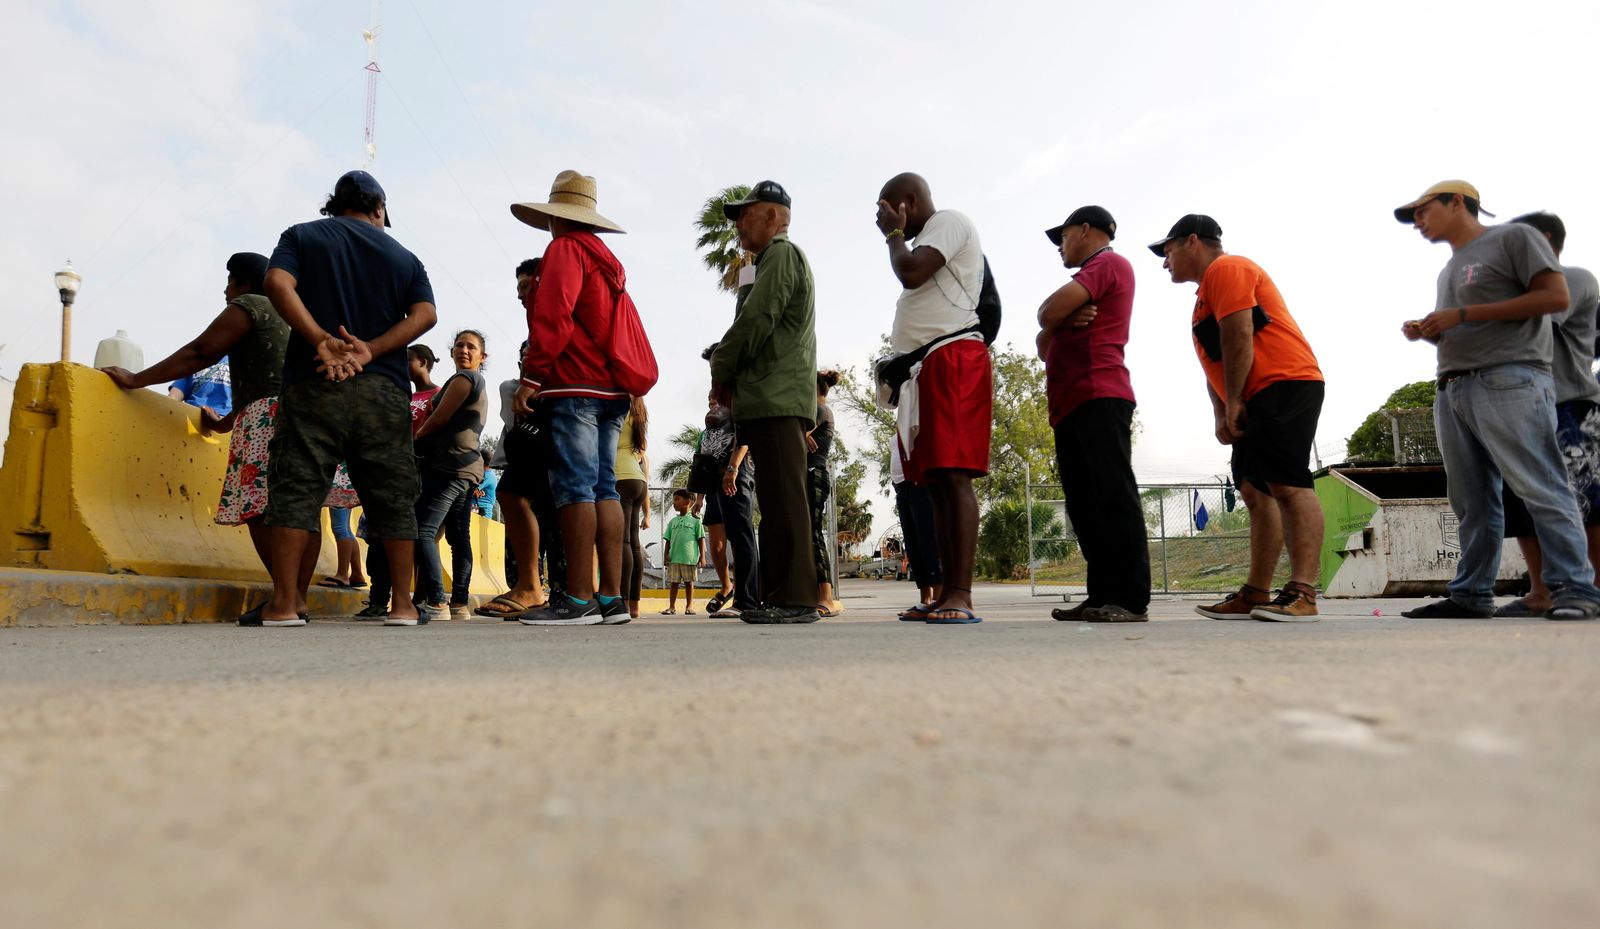 FILE - In this April 30, 2019, file photo, migrants seeking asylum in the United States line up for a meal provided by volunteers near the international bridge in Matamoros, Mexico. (AP Photo/Eric Gay, File)